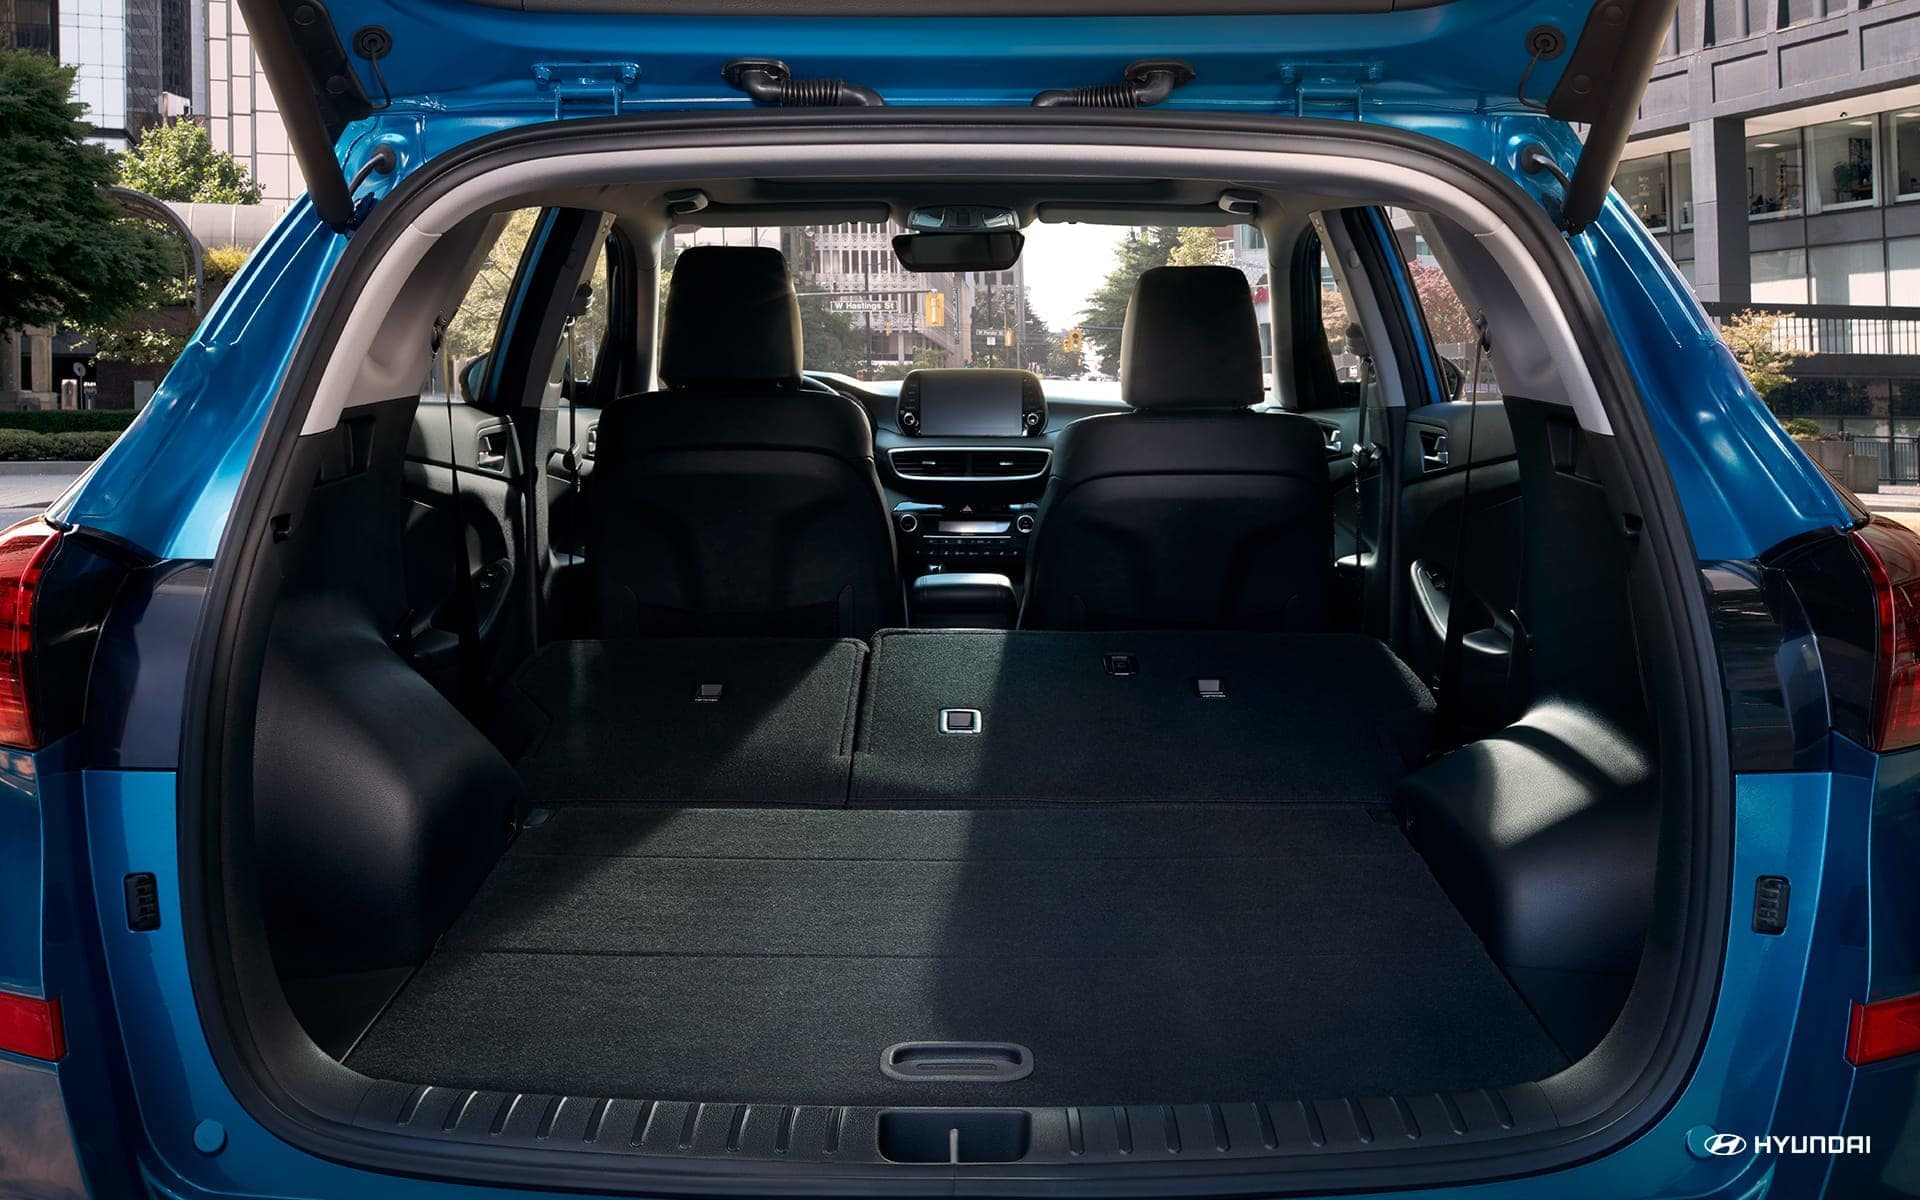 2019-Hyundai-Tucson-fold-down-rear-seats